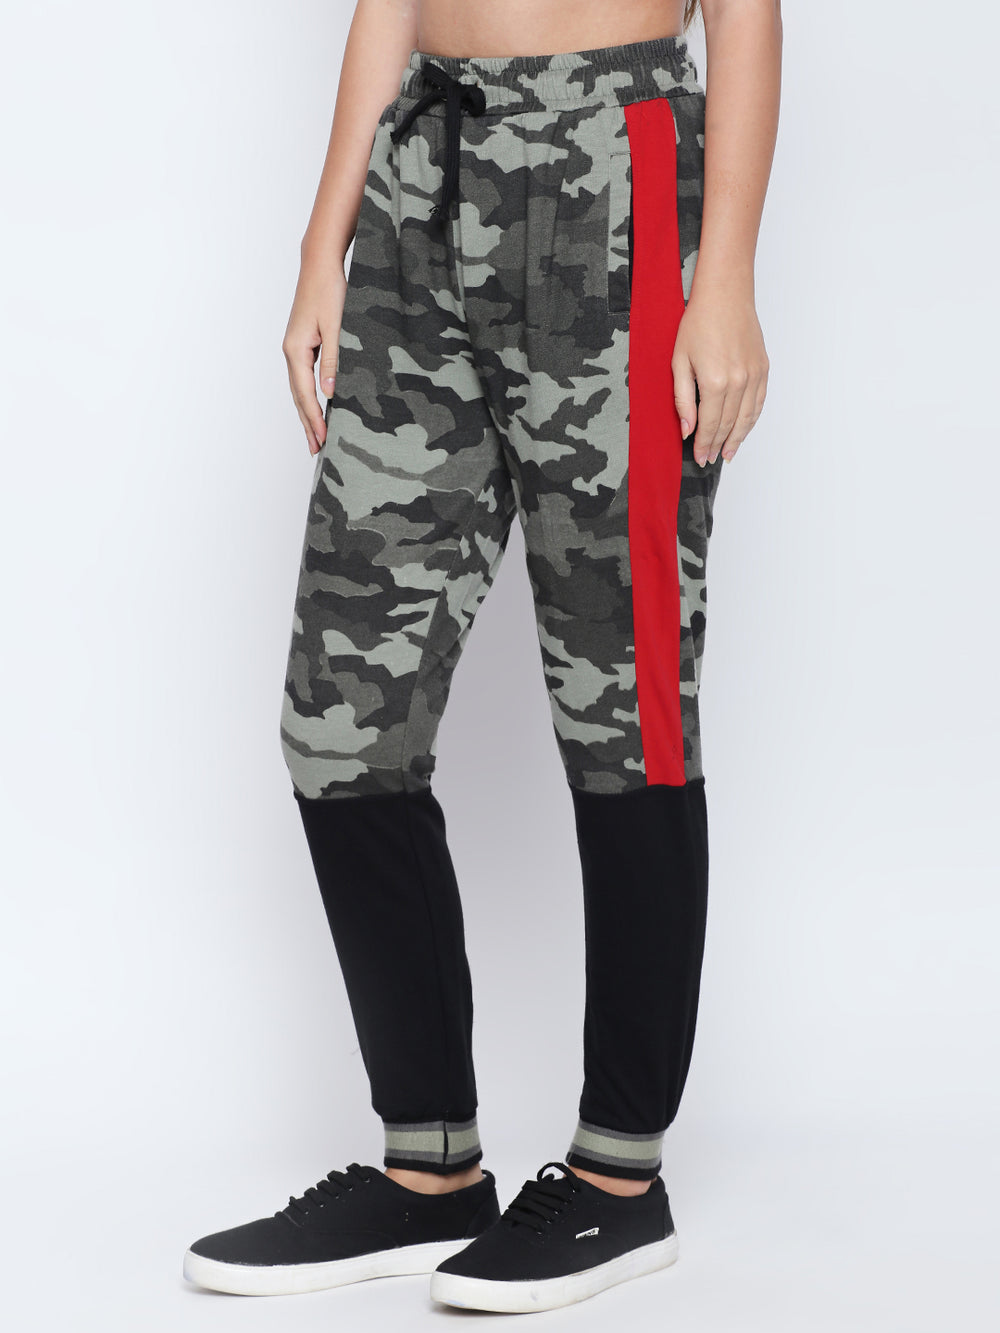 Olive Camouflage Print Red N Black Patterned Jogger